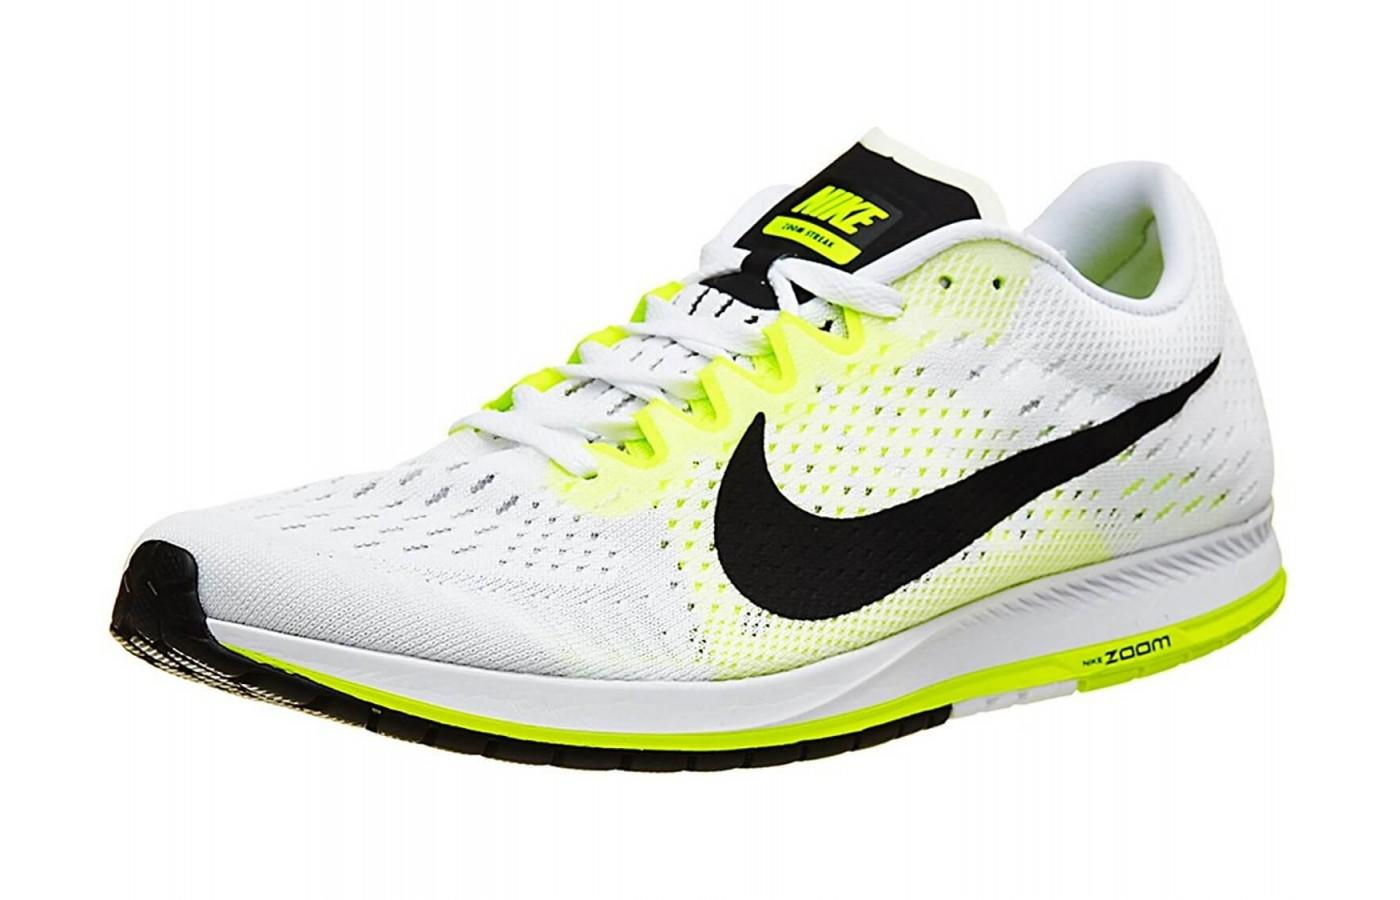 11e29b529d8e Nike Air Zoom Streak 6 Review - Buy or Not in Mar 2019